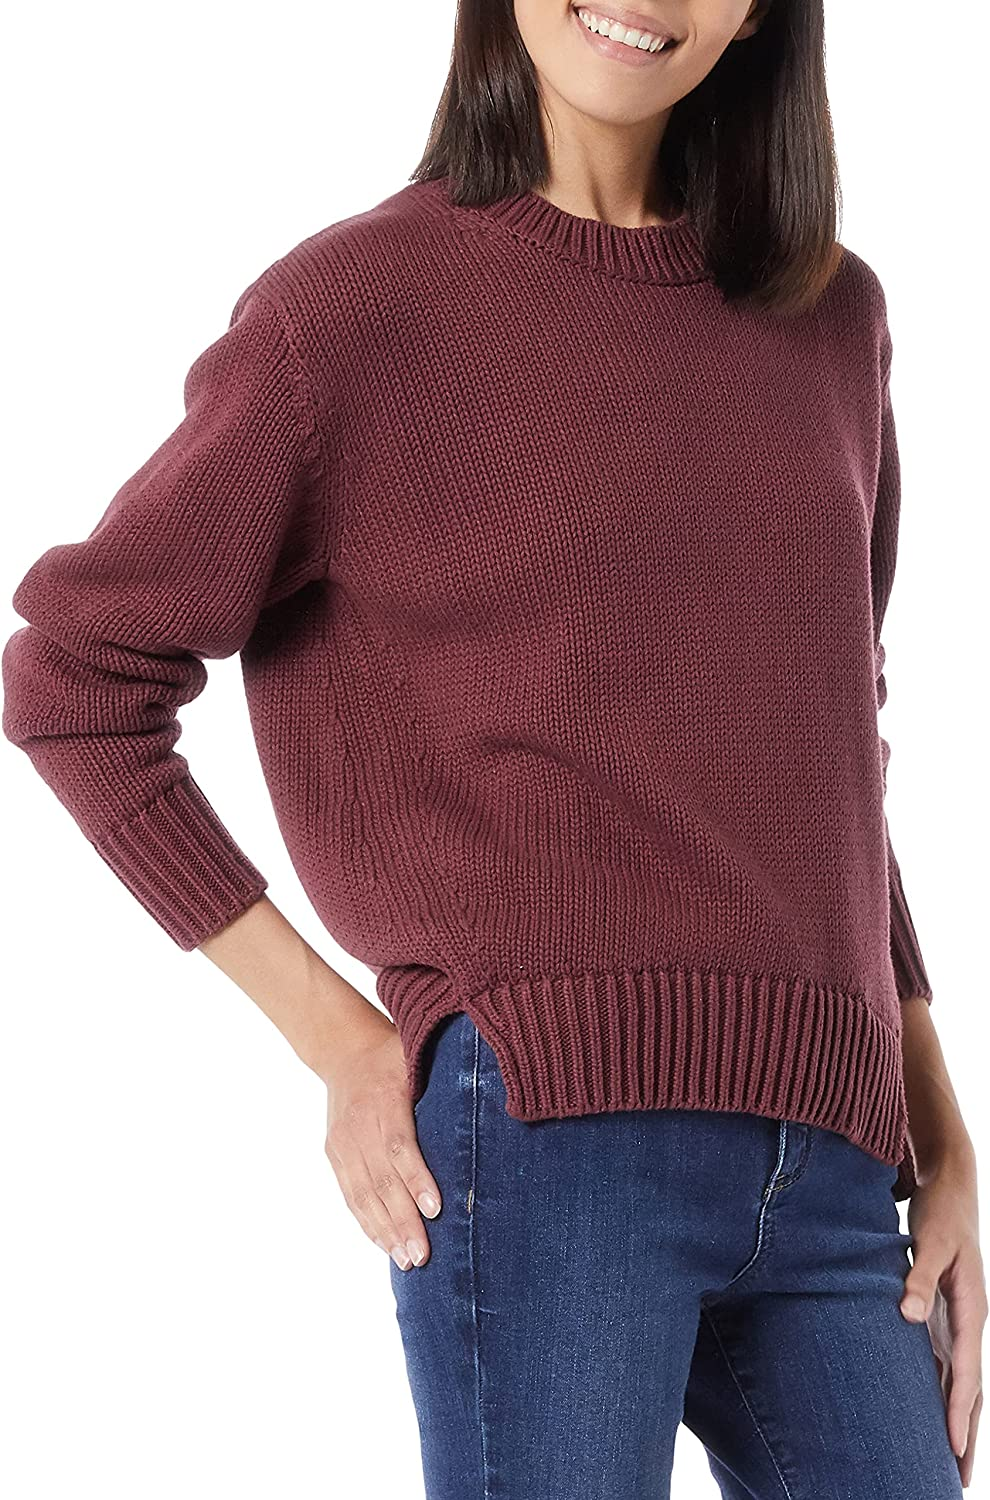 Amazon Brand - Daily Ritual Women's 100% Cotton Oversized Chunky Long-Sleeve Crew Pullover Sweater